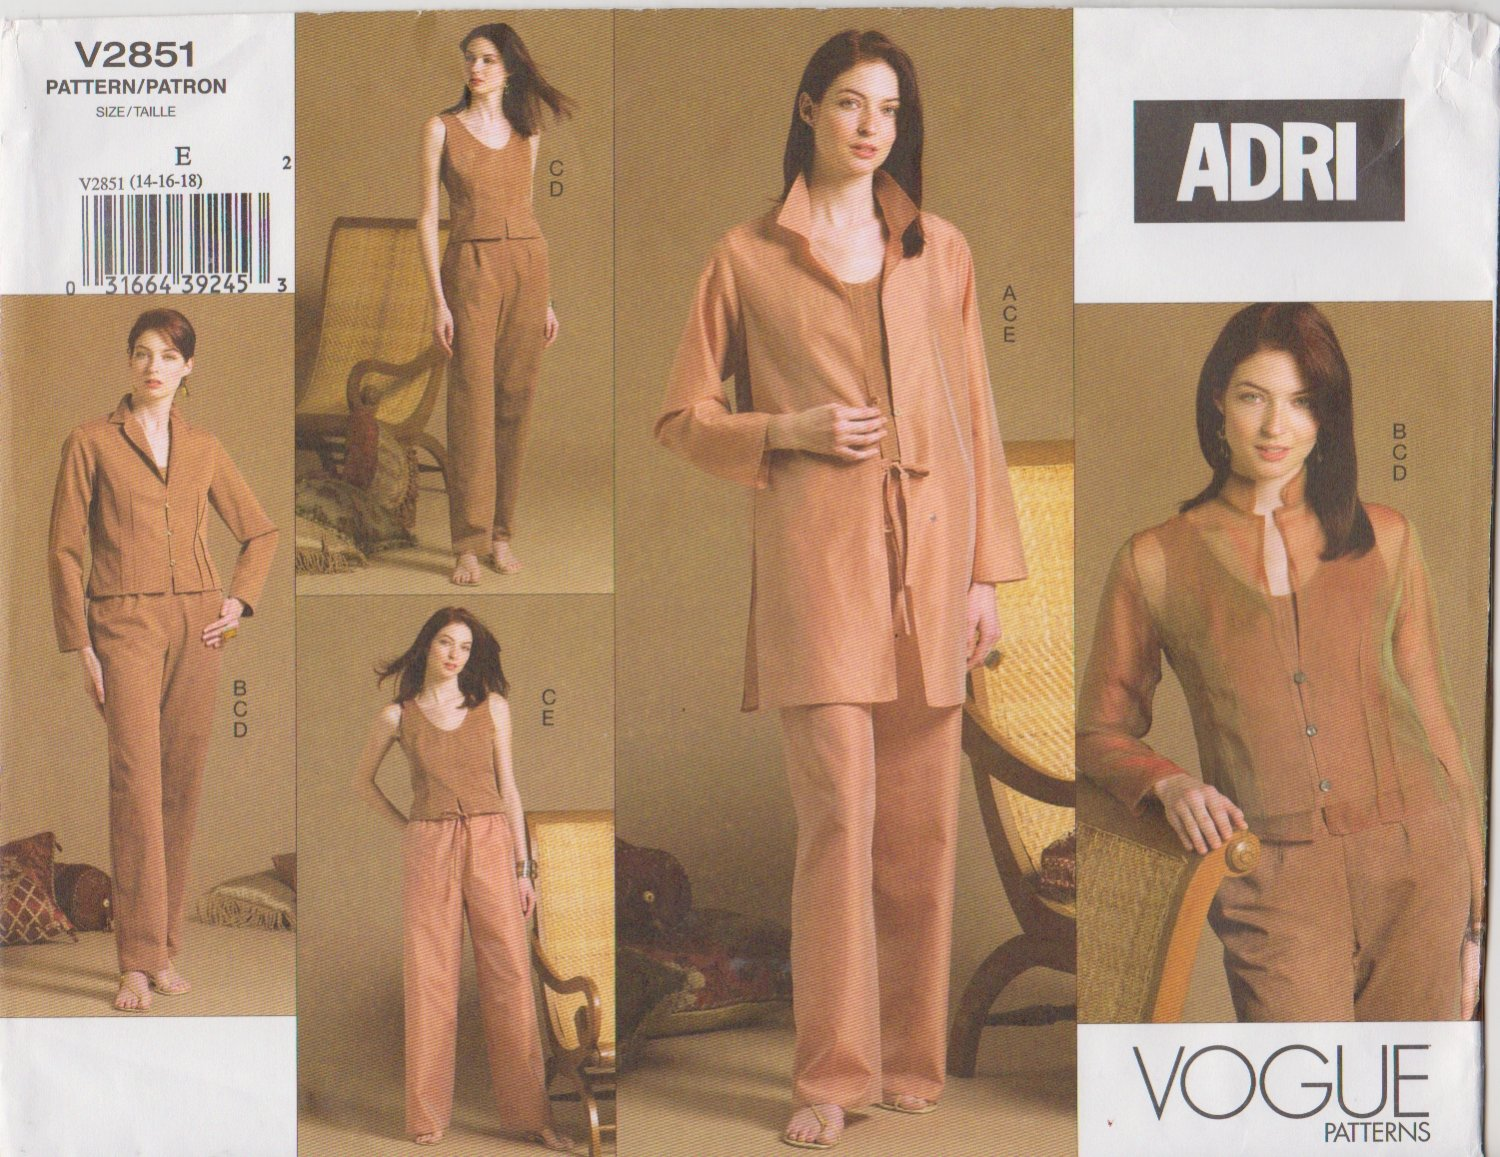 Vogue Sewing Pattern 2851 Misses Size 14-16-18 Easy Wardrobe ADRI Jacket Pants Top Shirt